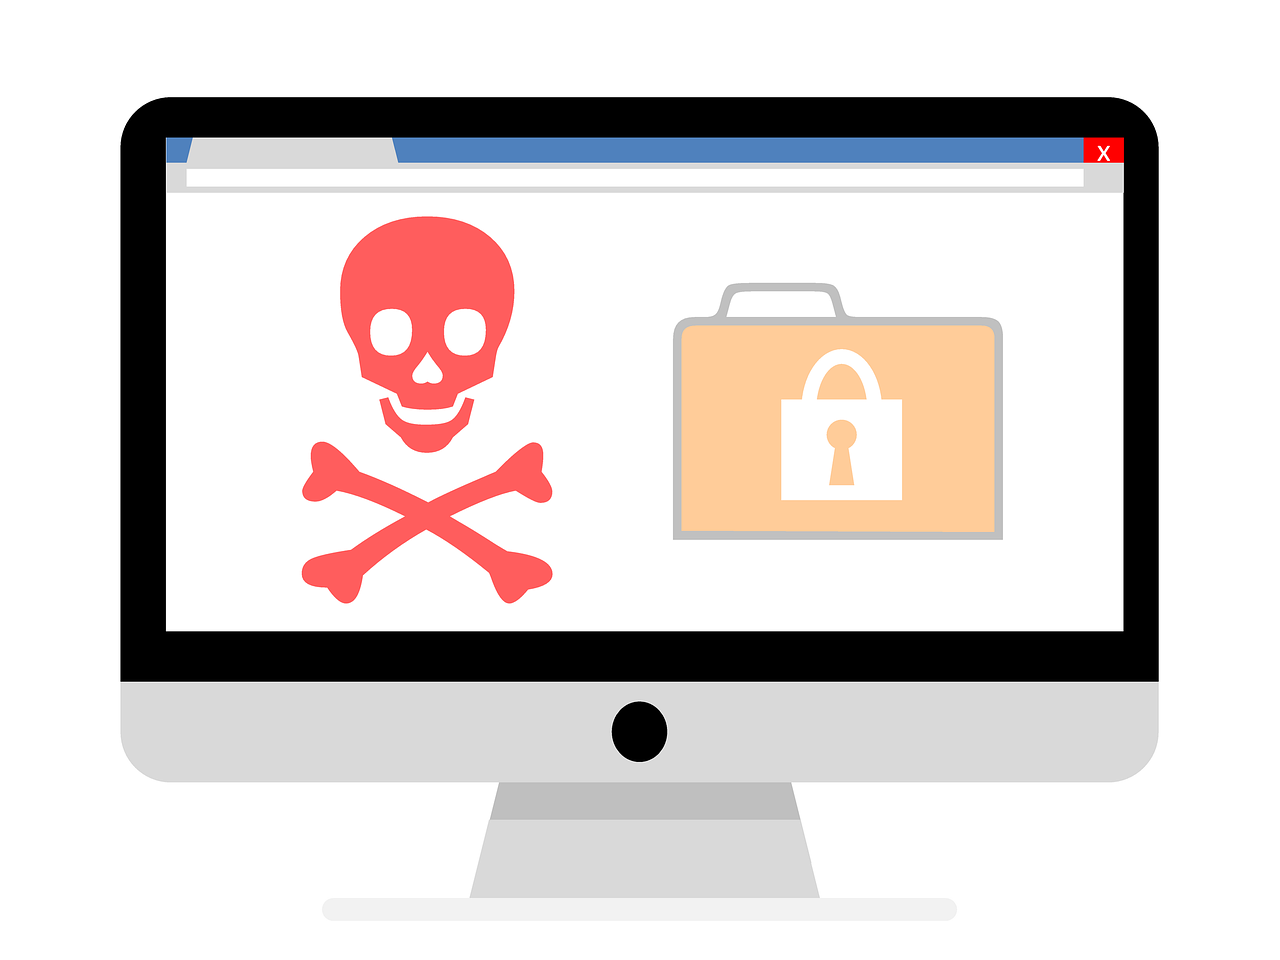 ransomware,virus,malware,hacker,threat,trojan,spyware,antivirus,infected,attack,ransom,unlock,folder,hacking,infection,security,data,free pictures, free photos, free images, royalty free, free illustrations, public domain